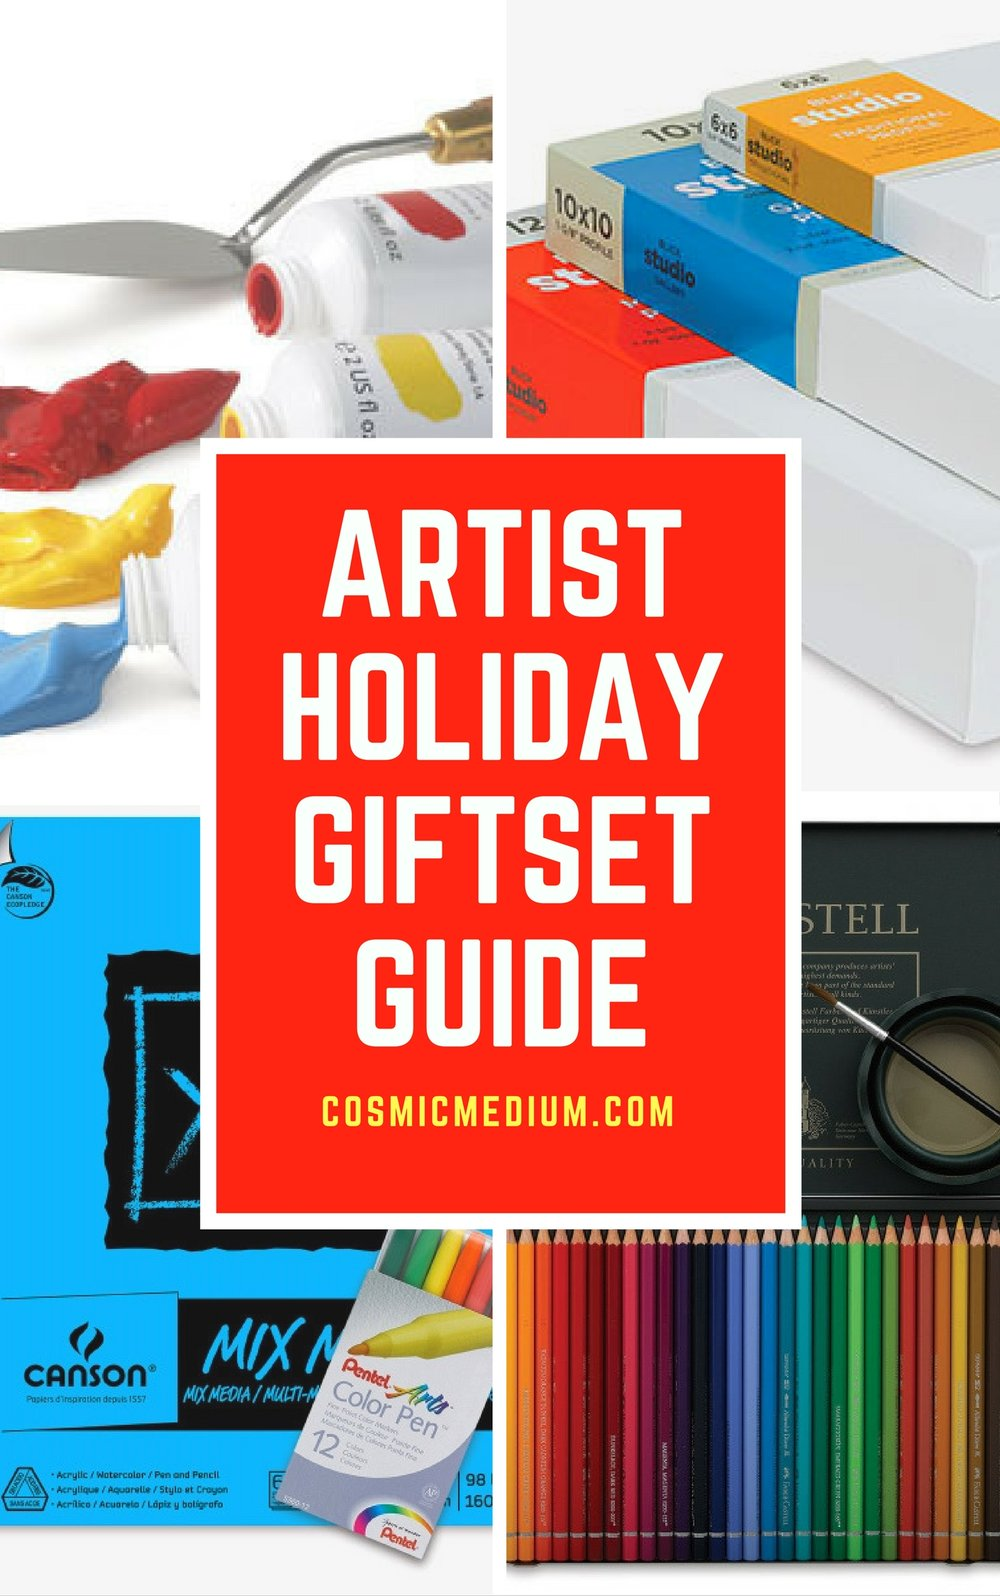 Art and Artis Holiday Sale Guide